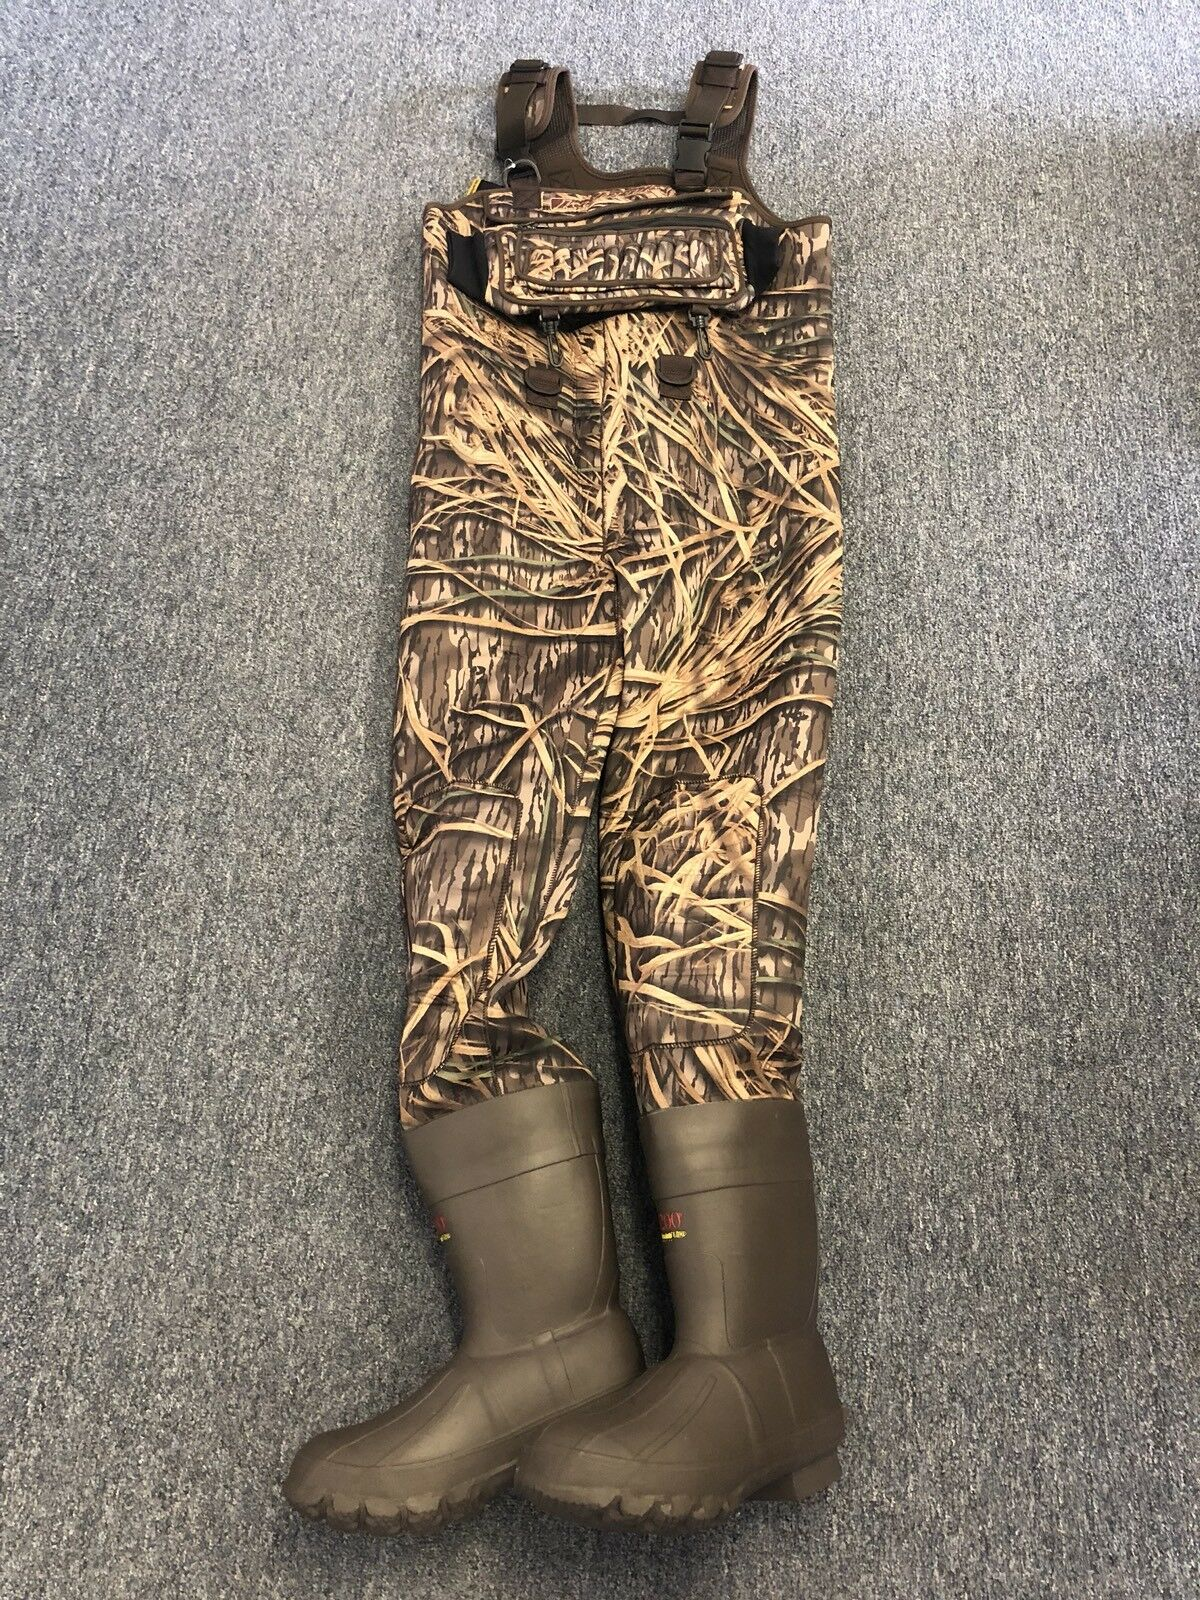 NEW 4mm Waterfowler Shadow Grass  Camo Neoprene Hunting Chest Wader Lug Size 11  comfortably